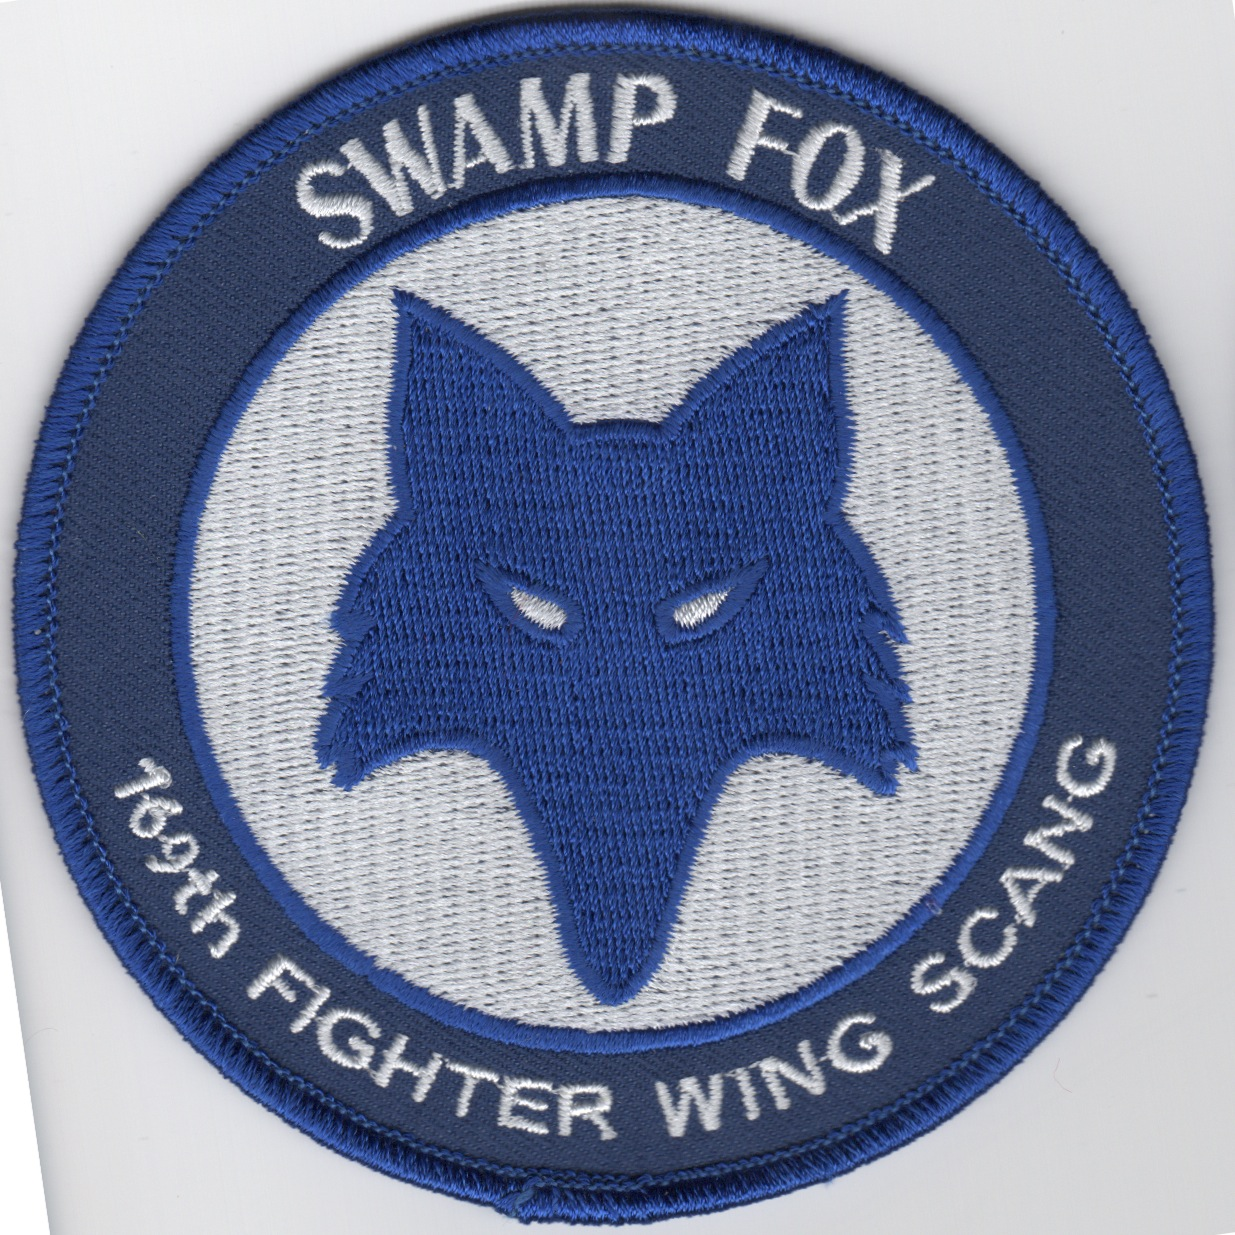 169FW 'Swamp Fox' (Blue Foxhead)